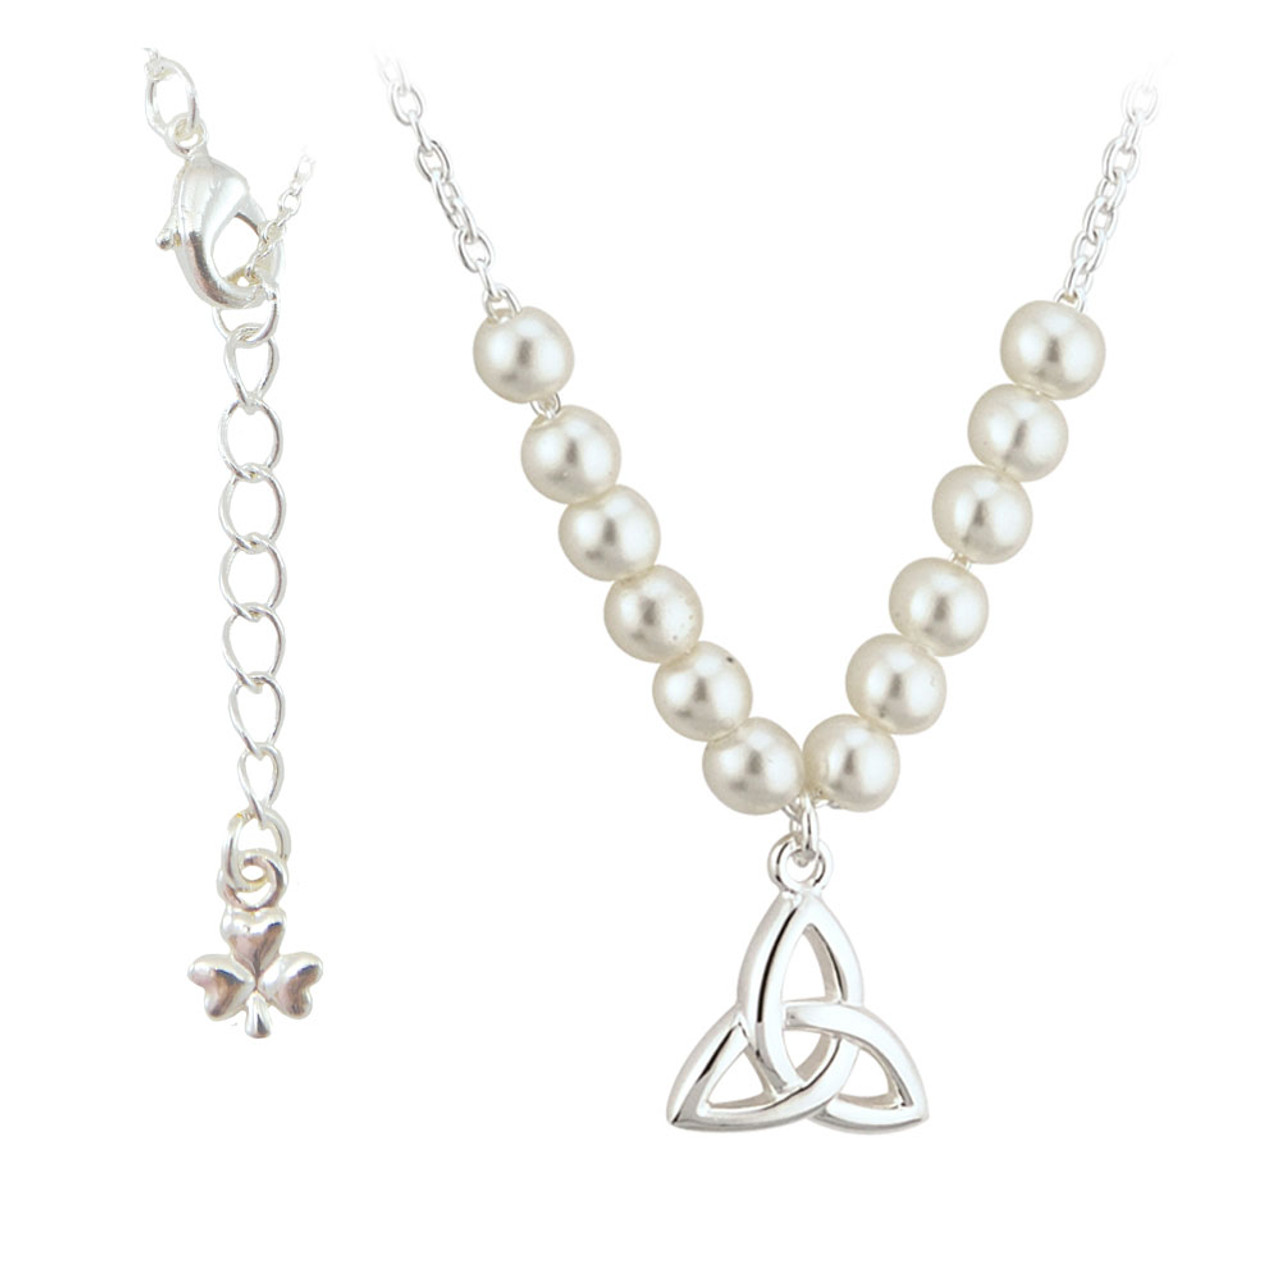 Child's Trinity Knot Pearl Necklace Silver Plated